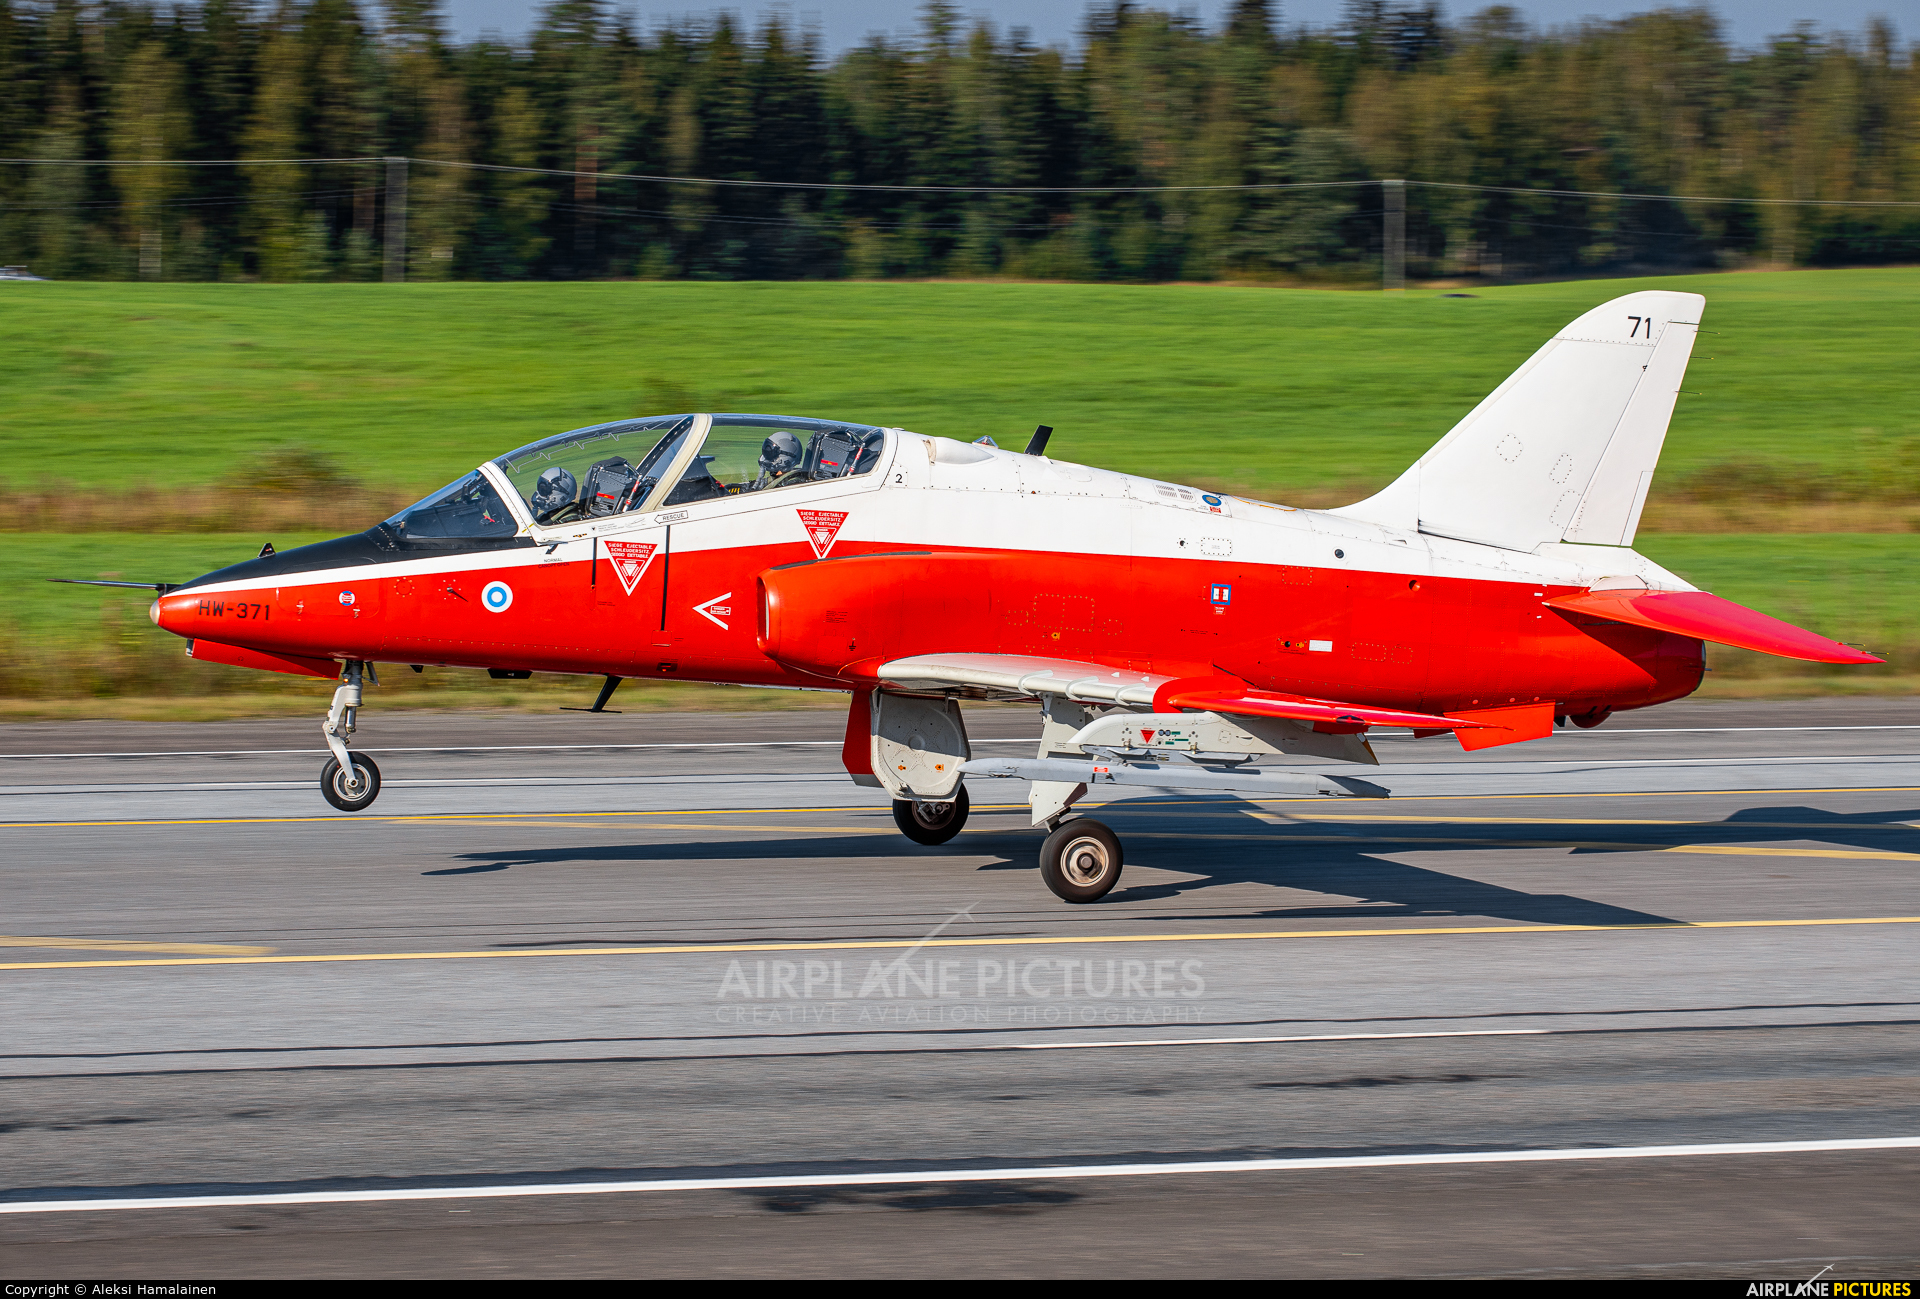 Finland - Air Force HW-371 aircraft at Off Airport - Lusi Highway Strip